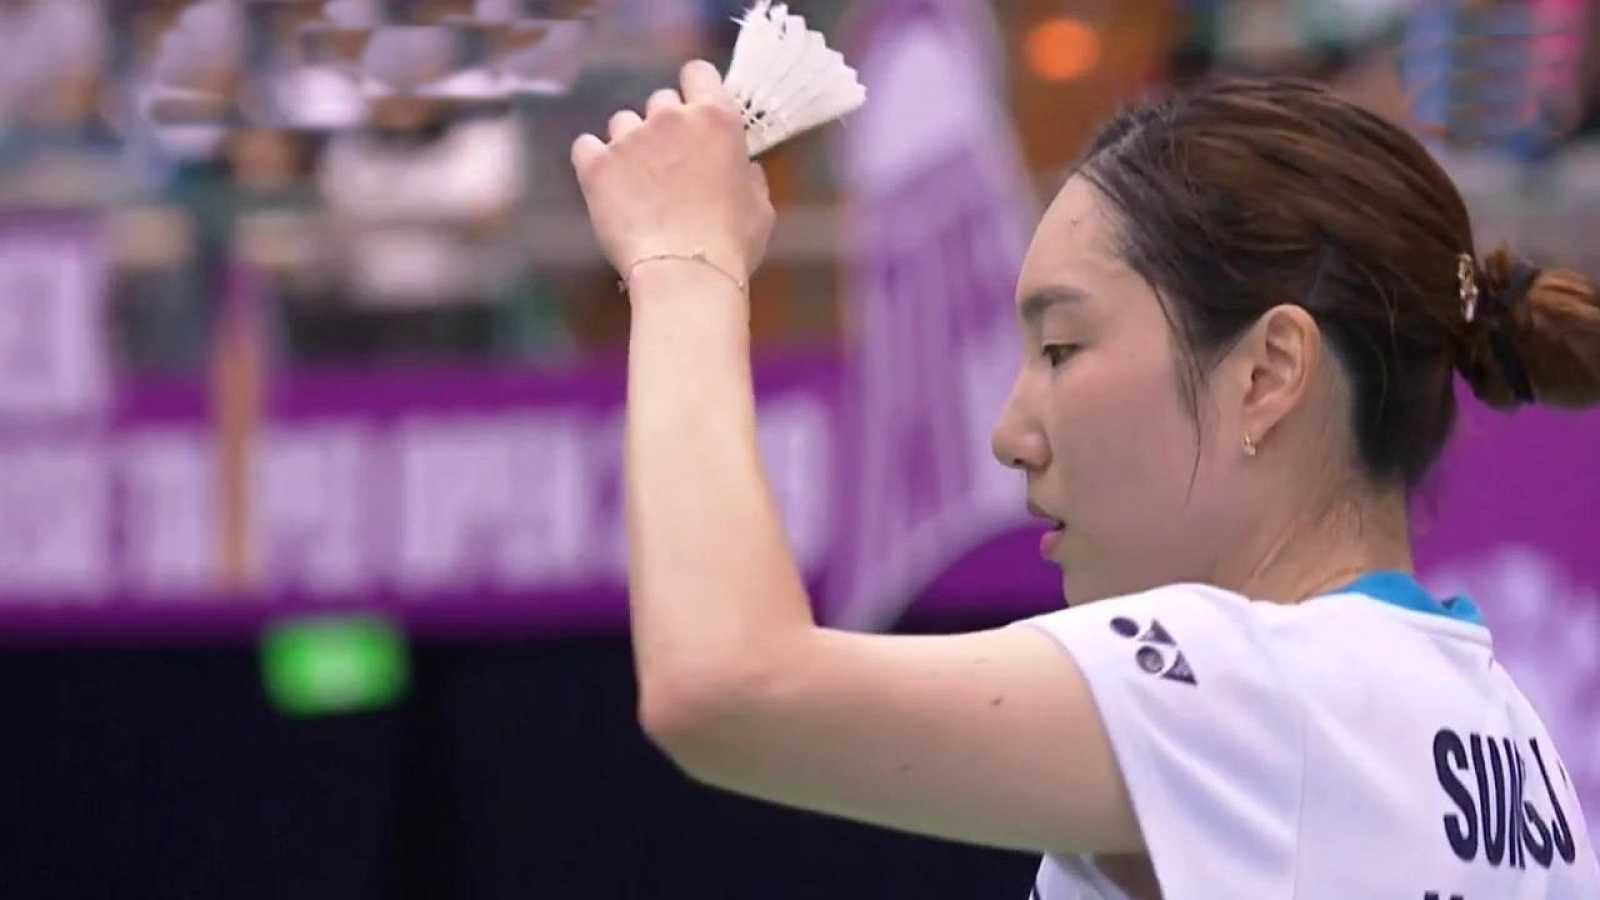 Bádminton - Open de China Taipei. Final femenina: Sung Ji Hyun - Michelle LI - ver ahora